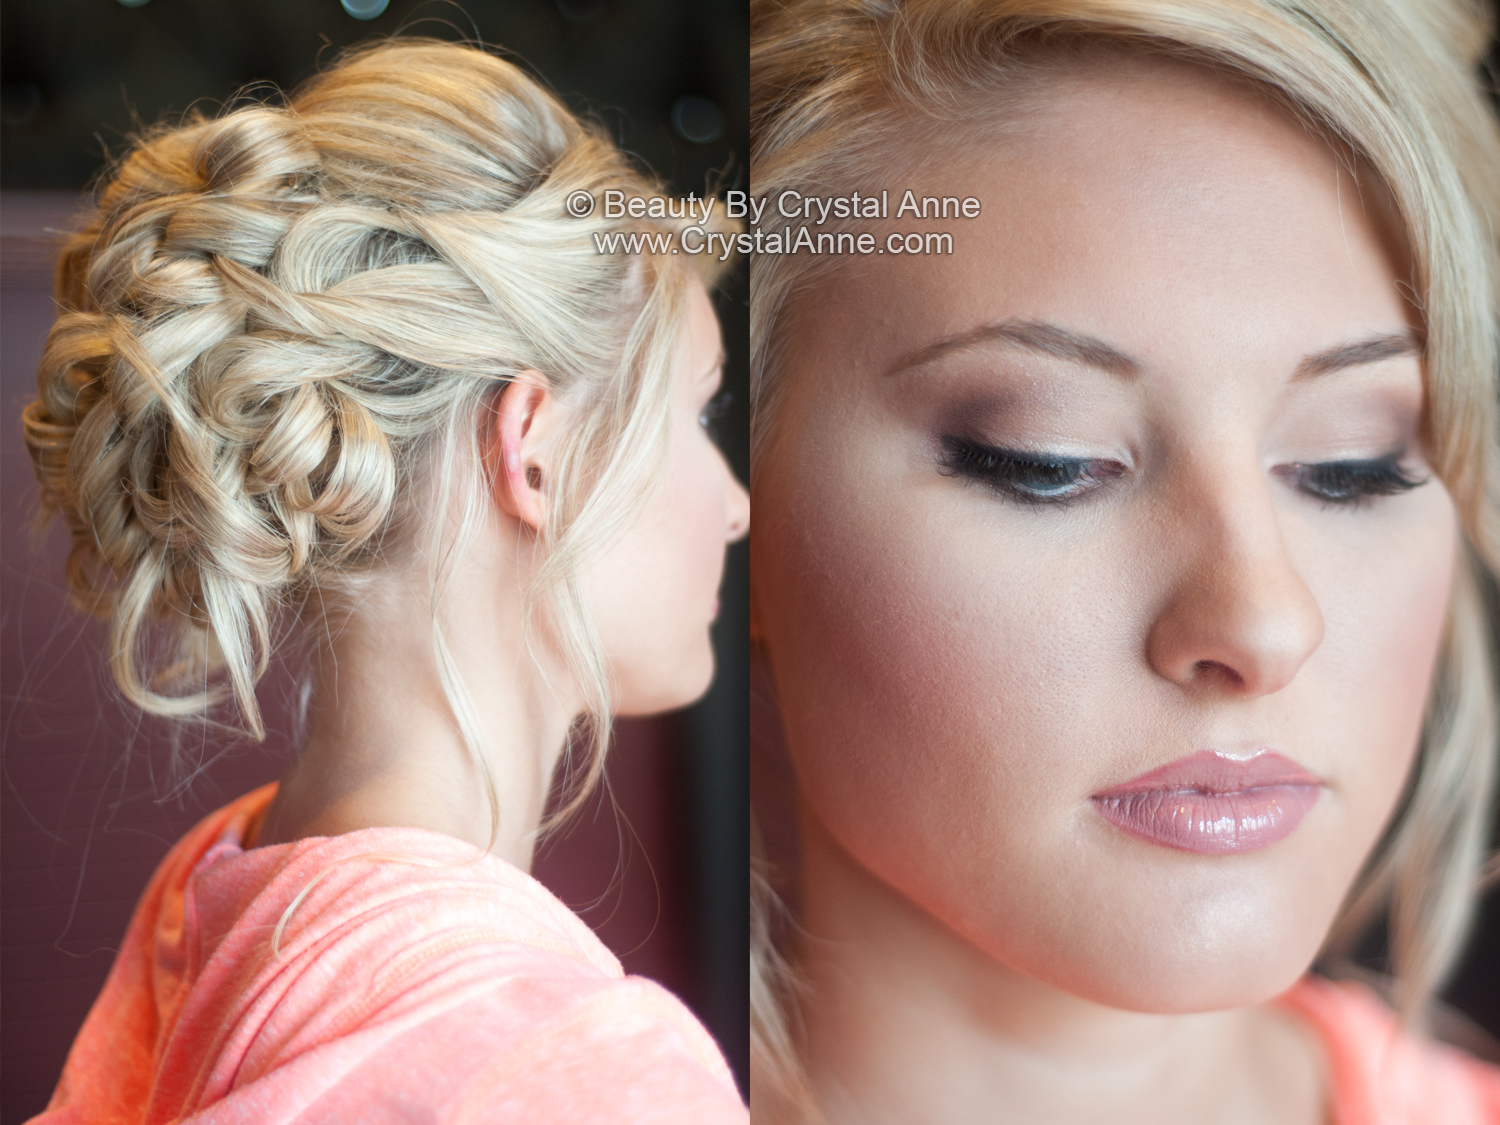 hair and makeup for prom in sugarland, tx - houston hair